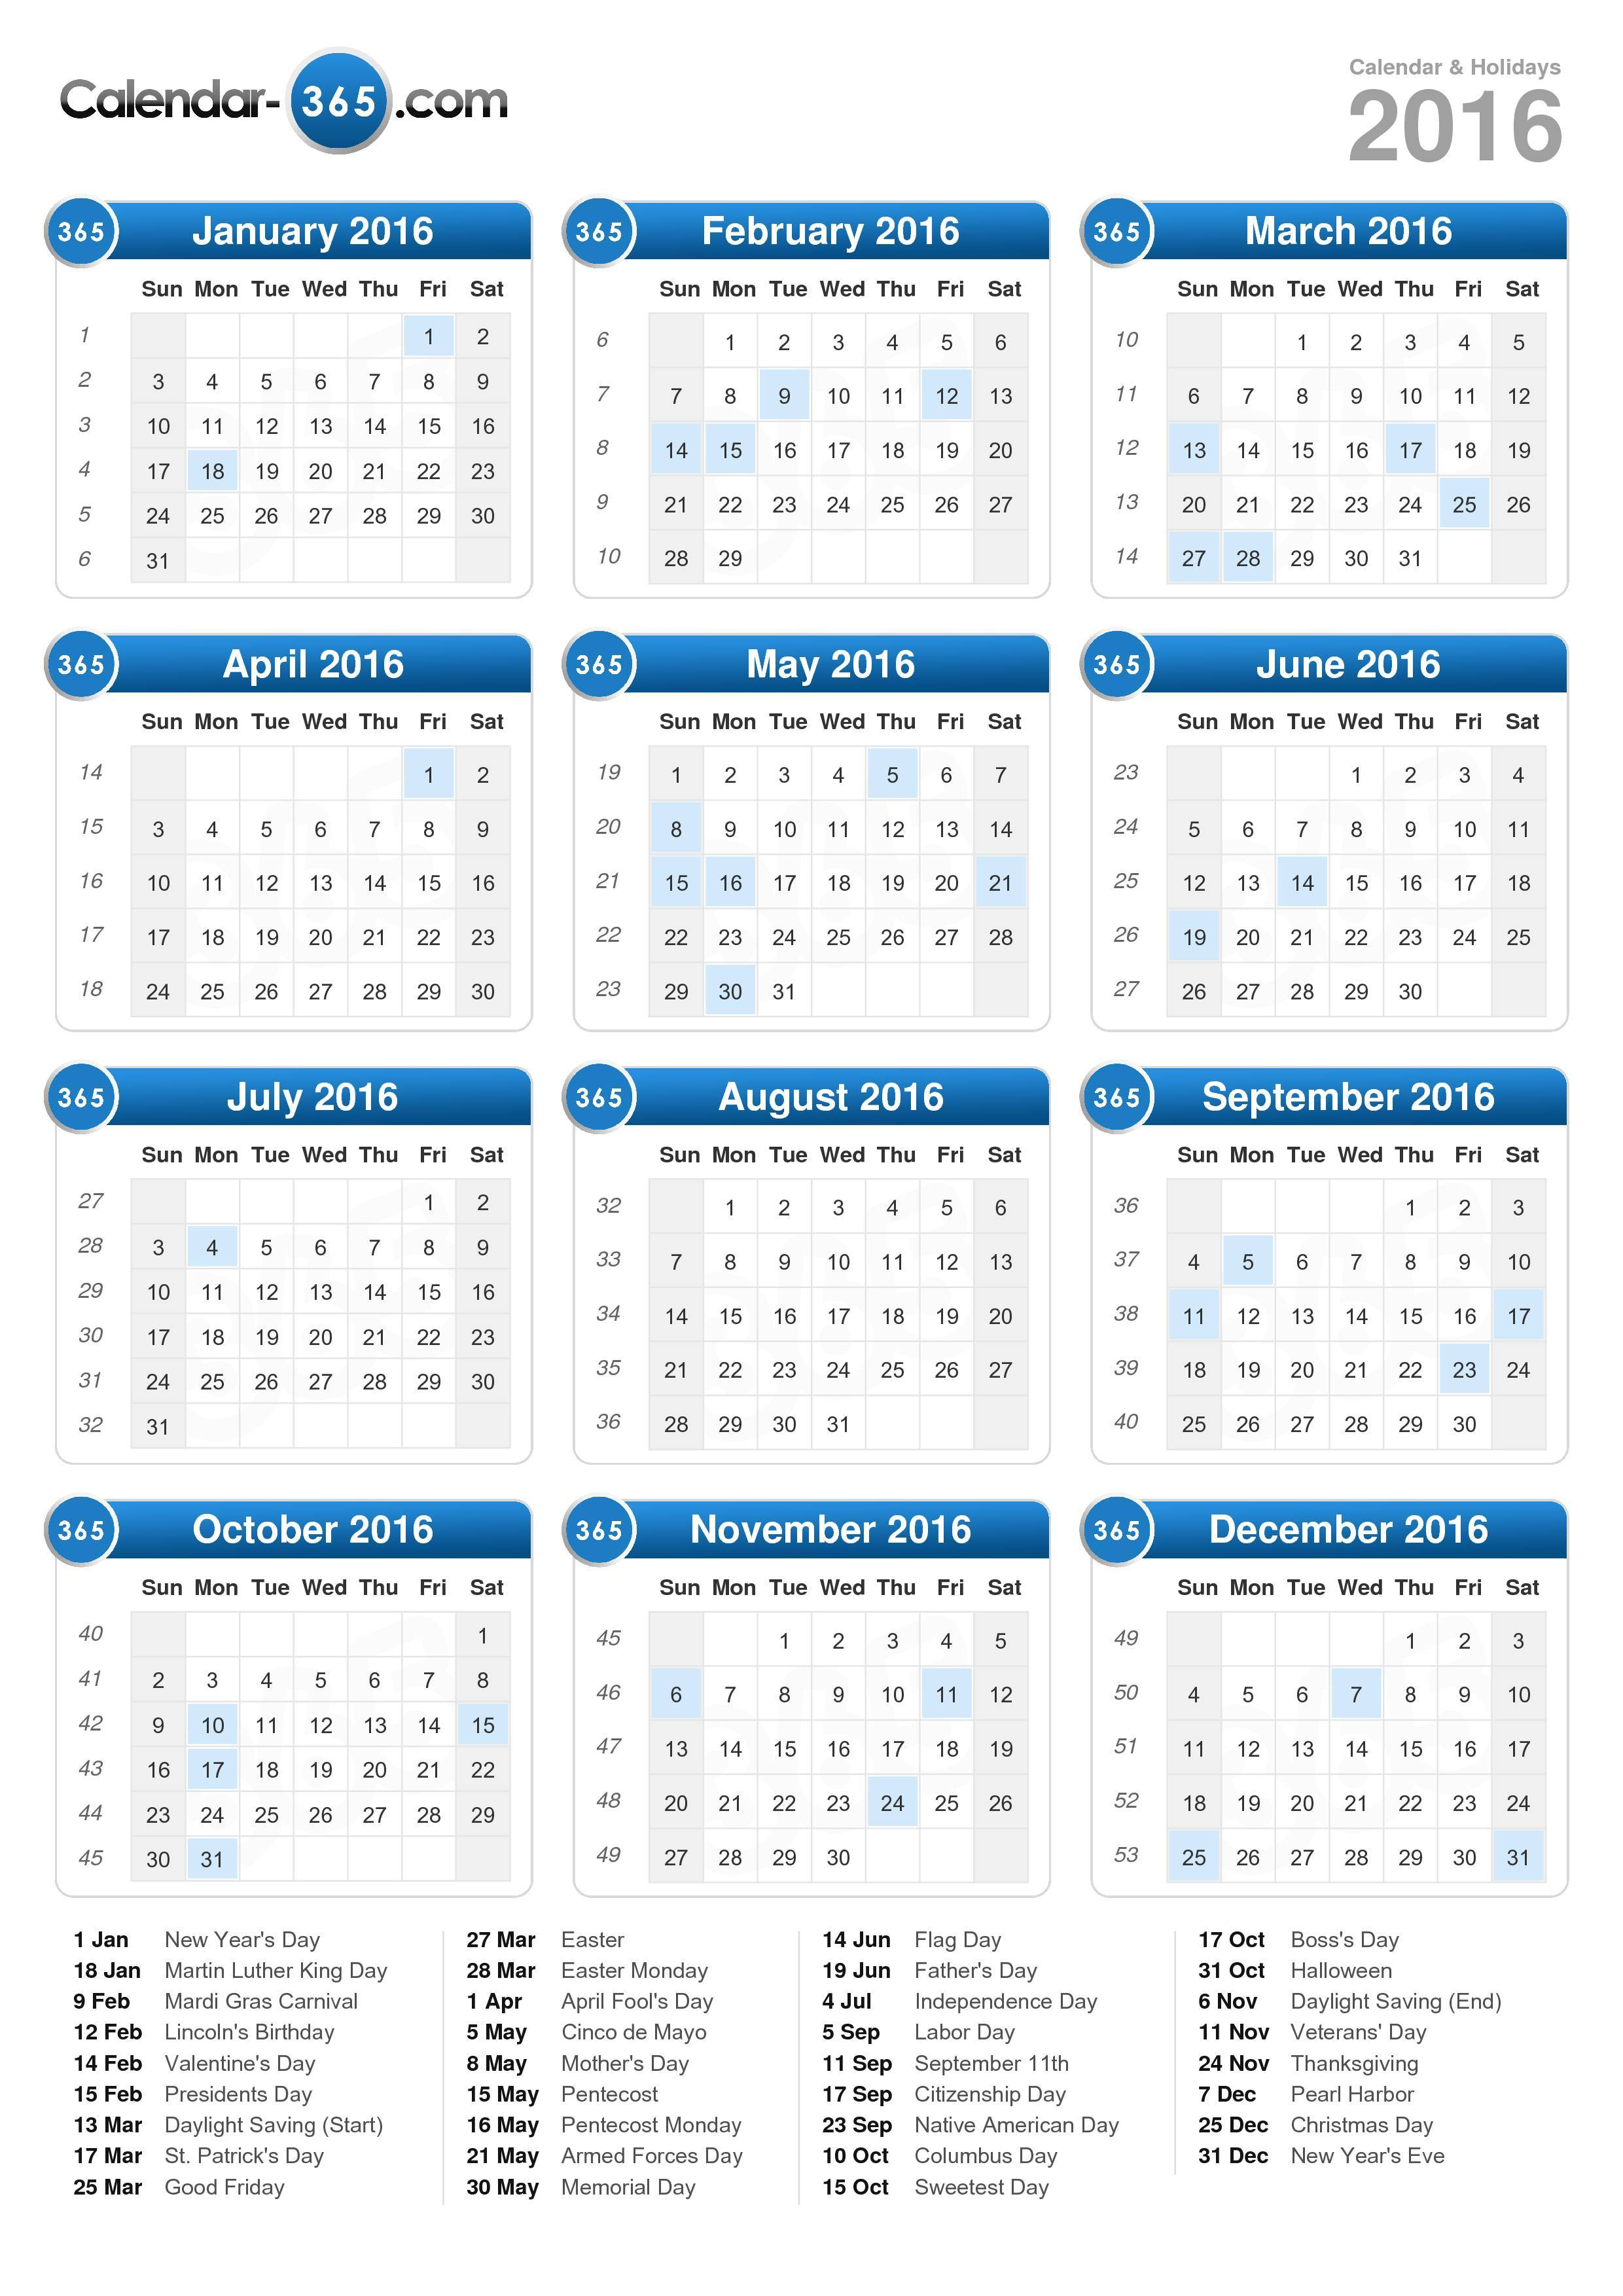 Download the 2016 Calendar with holidays . (Portrait format - 1 Page)